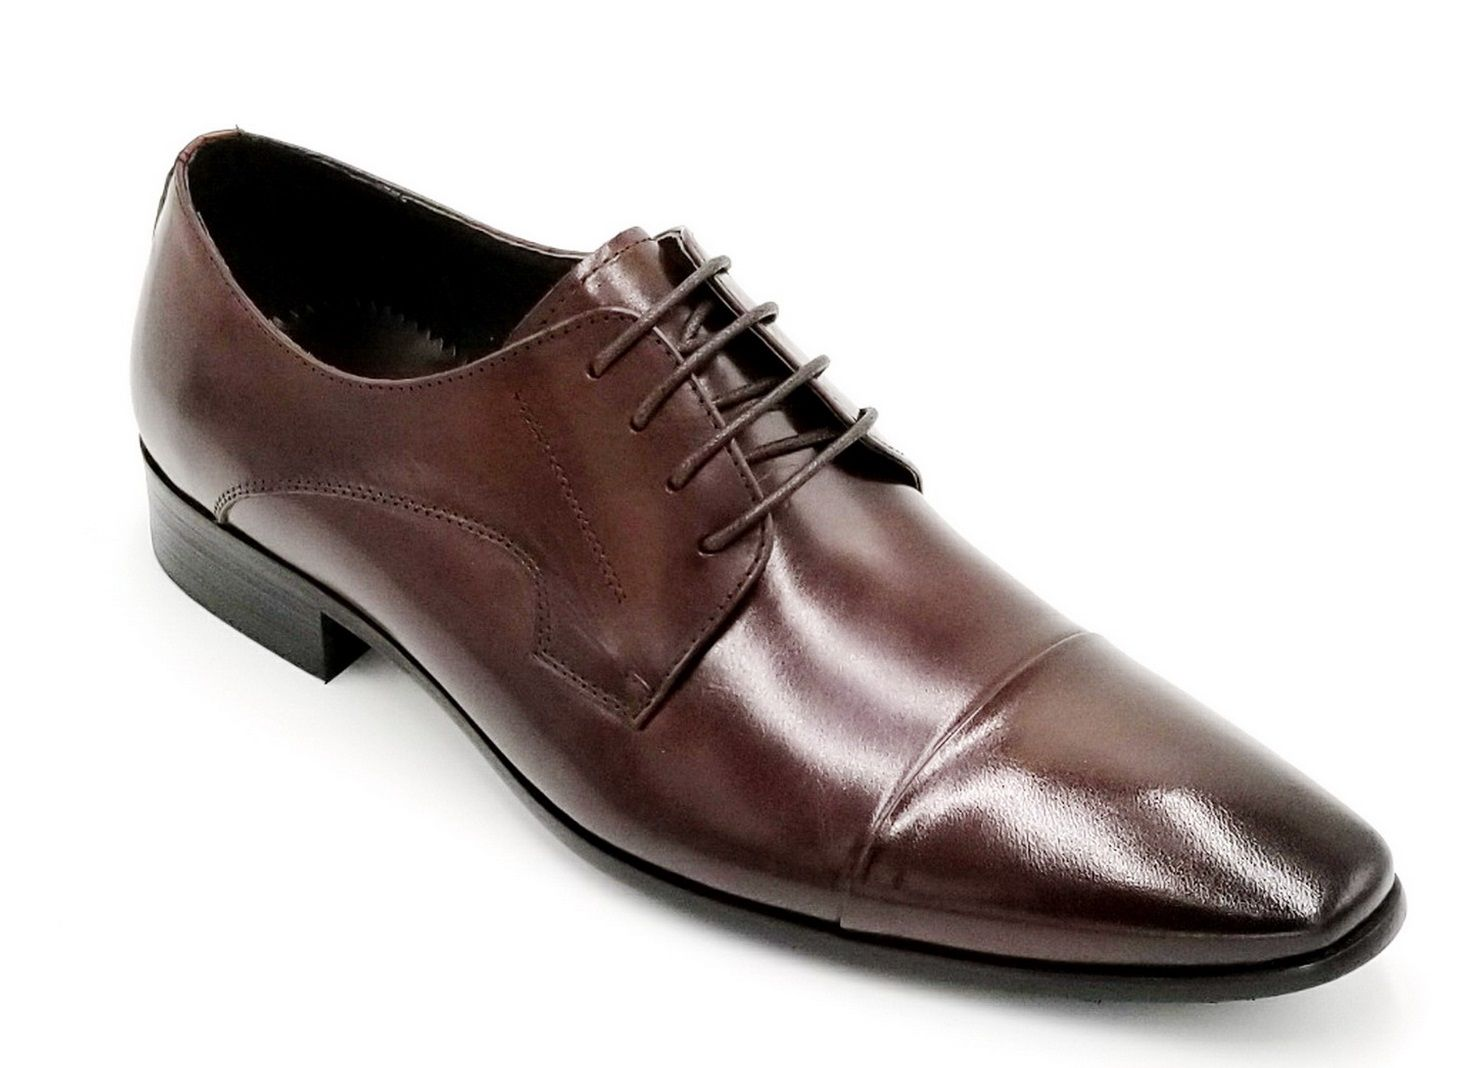 ZOTA Men's Premium Leather Dress Shoe - Sleek Lace Up